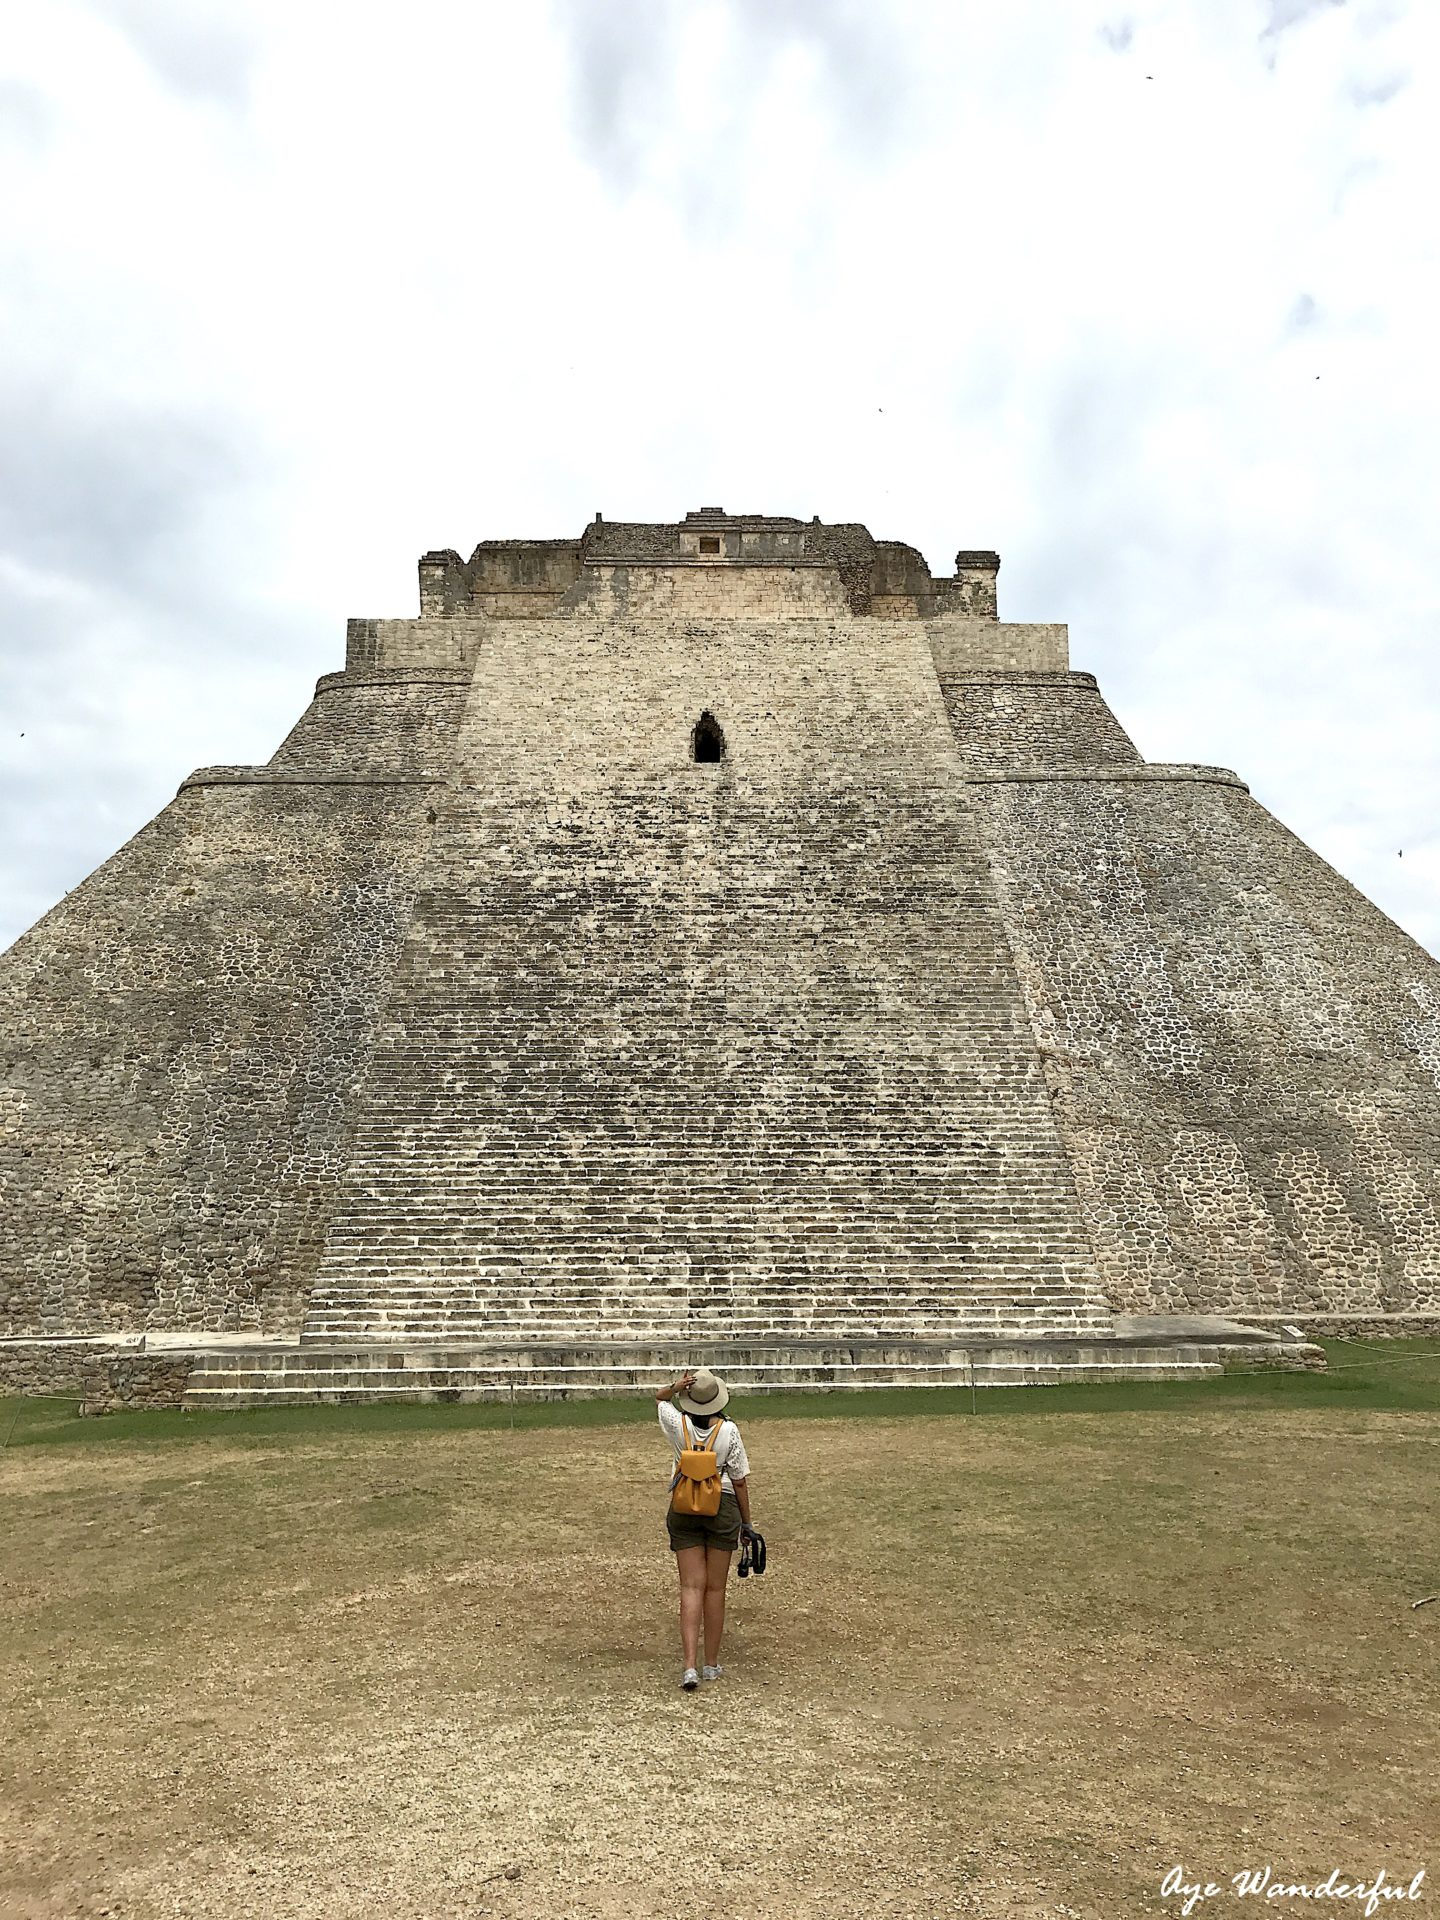 Uxmal Pyramids   Mayan Ruins   Merida Travel Guide   Things to do   Where to stay   What to eat   Restaurants   Transportation   Day Trips   Merida Mexico